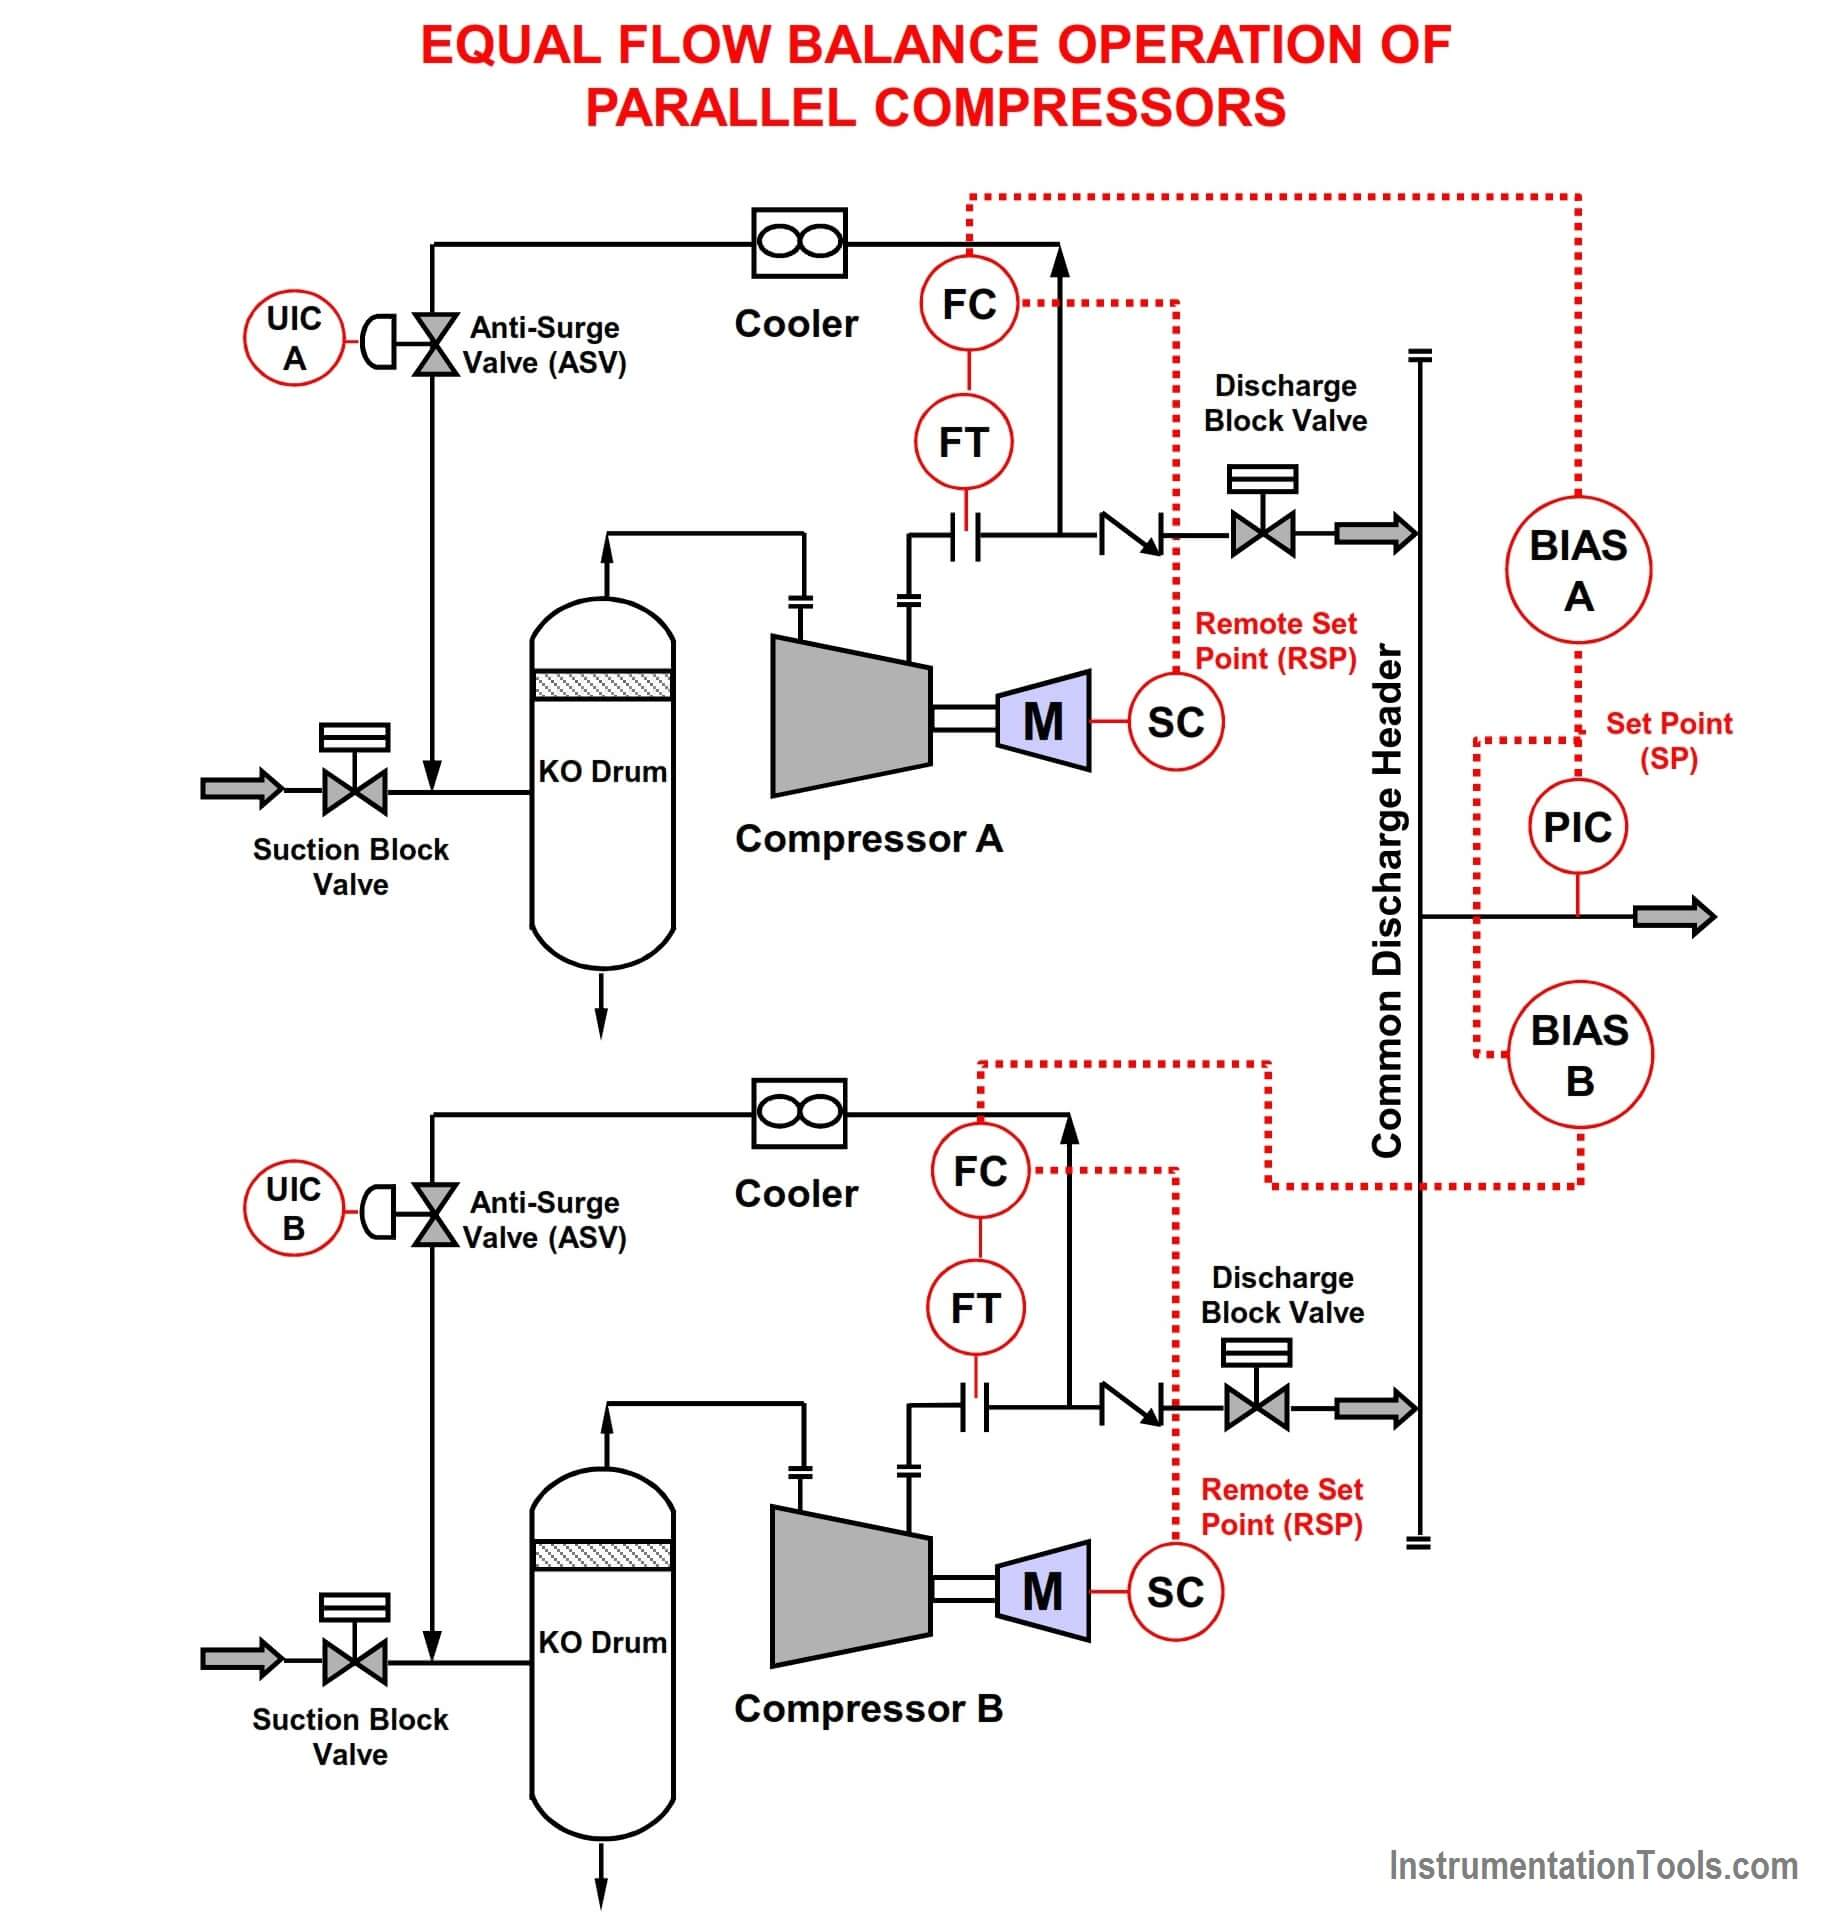 Equal Flow Balance Operation of Parallel Compressors